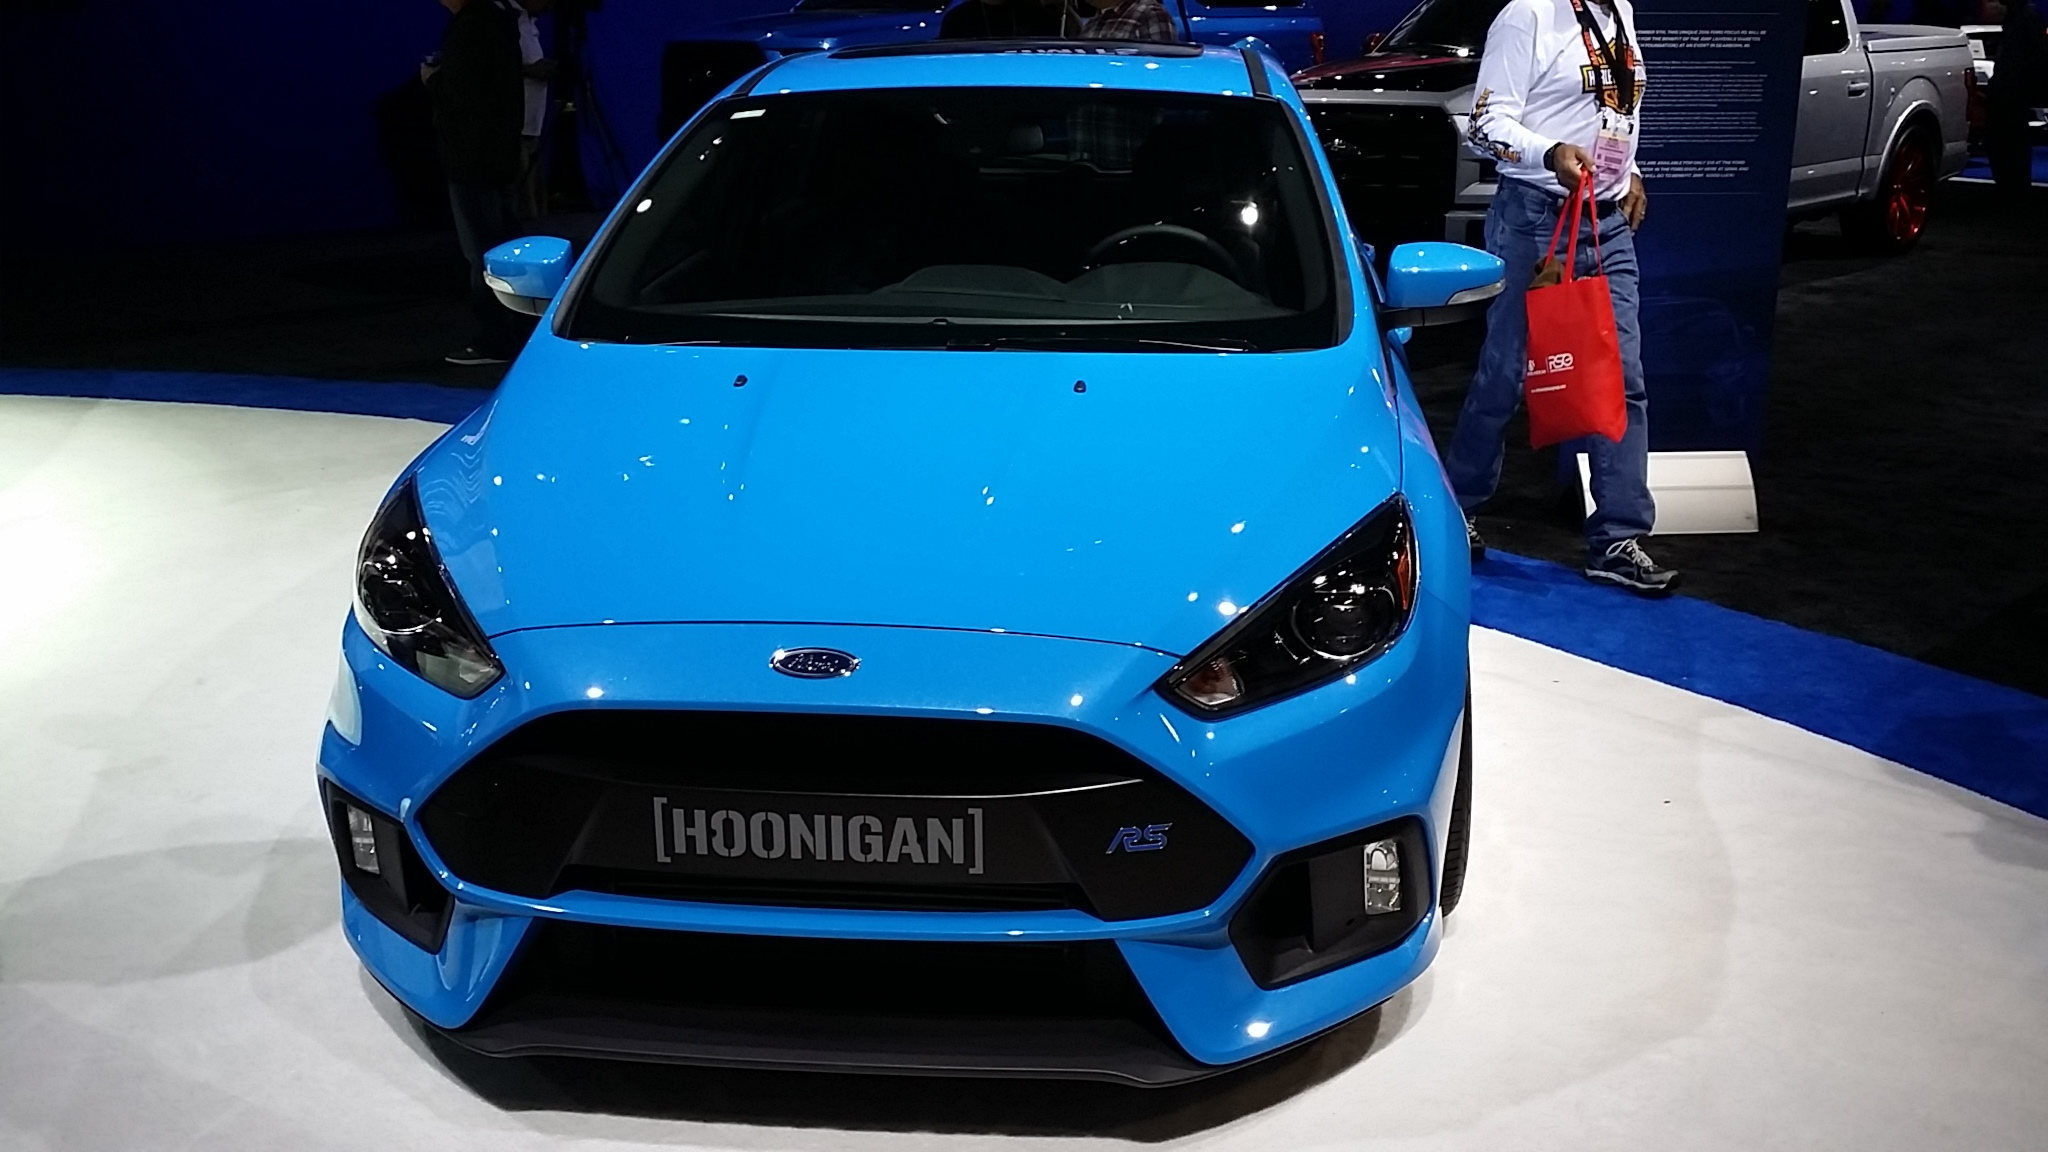 Focus Rs Photos >> 2015 Sema Focus RS, Ford GT, NSX and random pictures